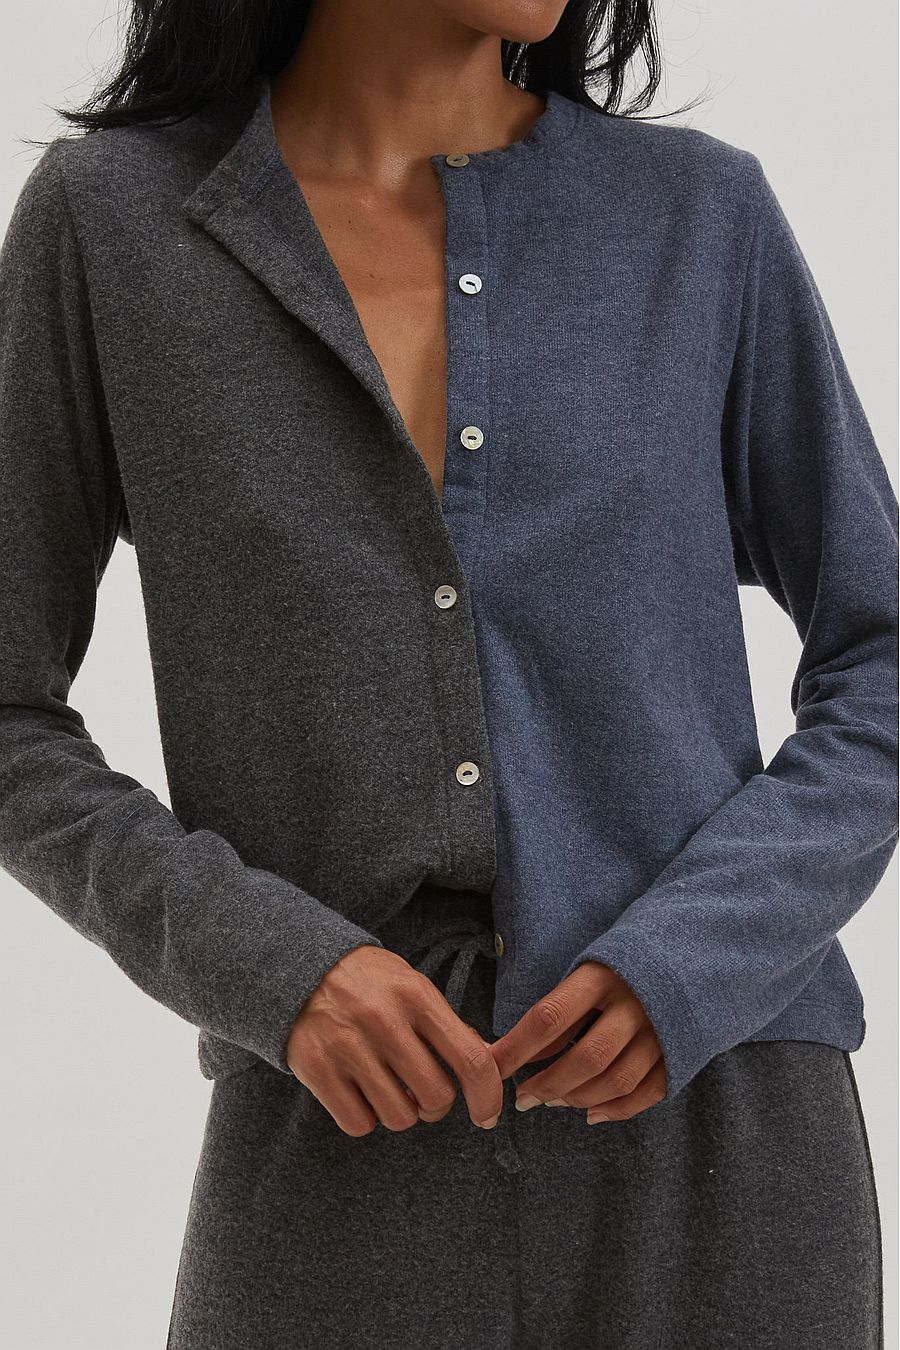 DONNI. Duo Sweater Cardi - Navy/Jet